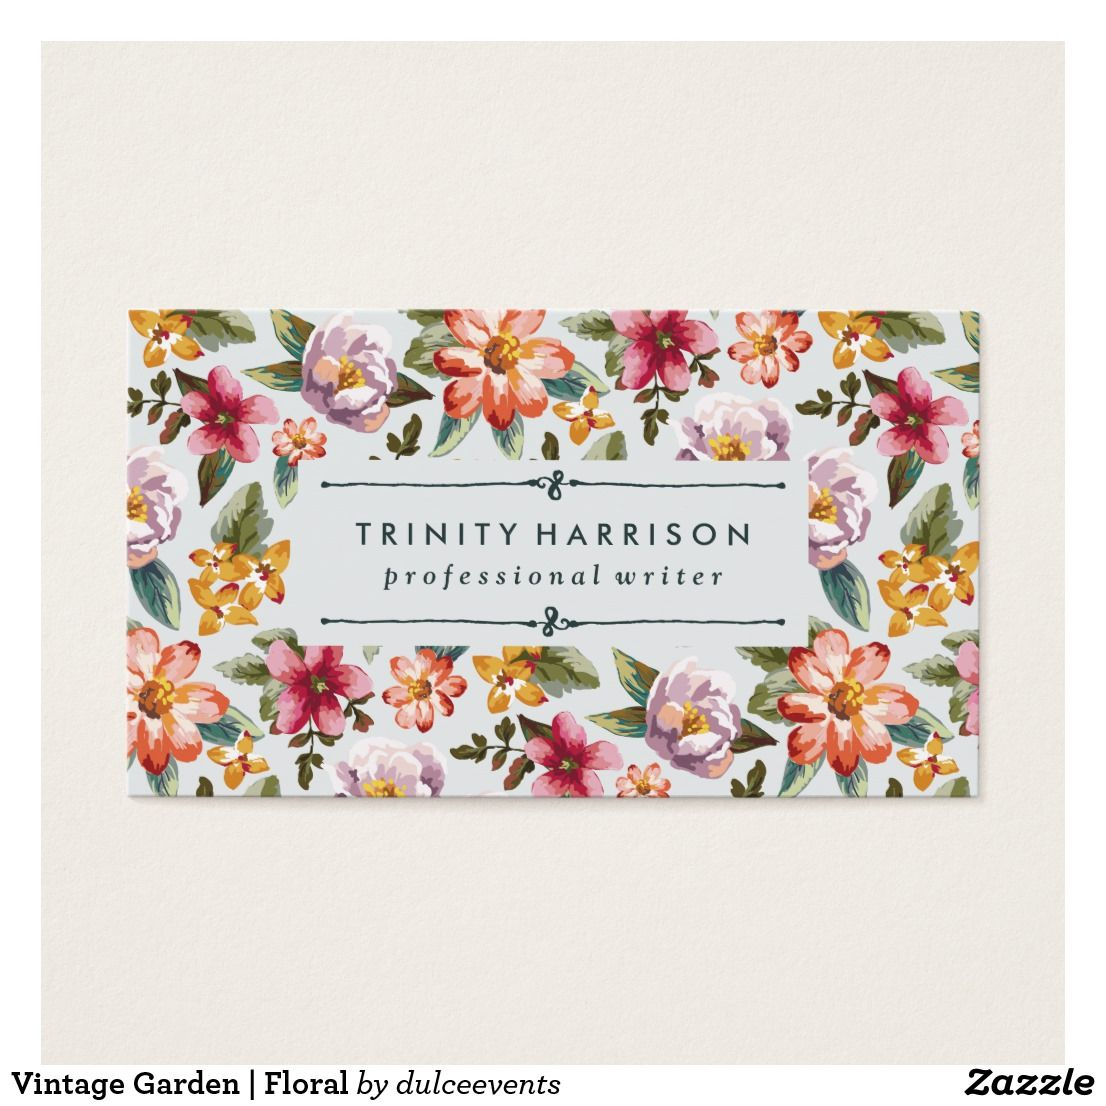 Vintage Garden | Floral Business Card | Business cards and Business